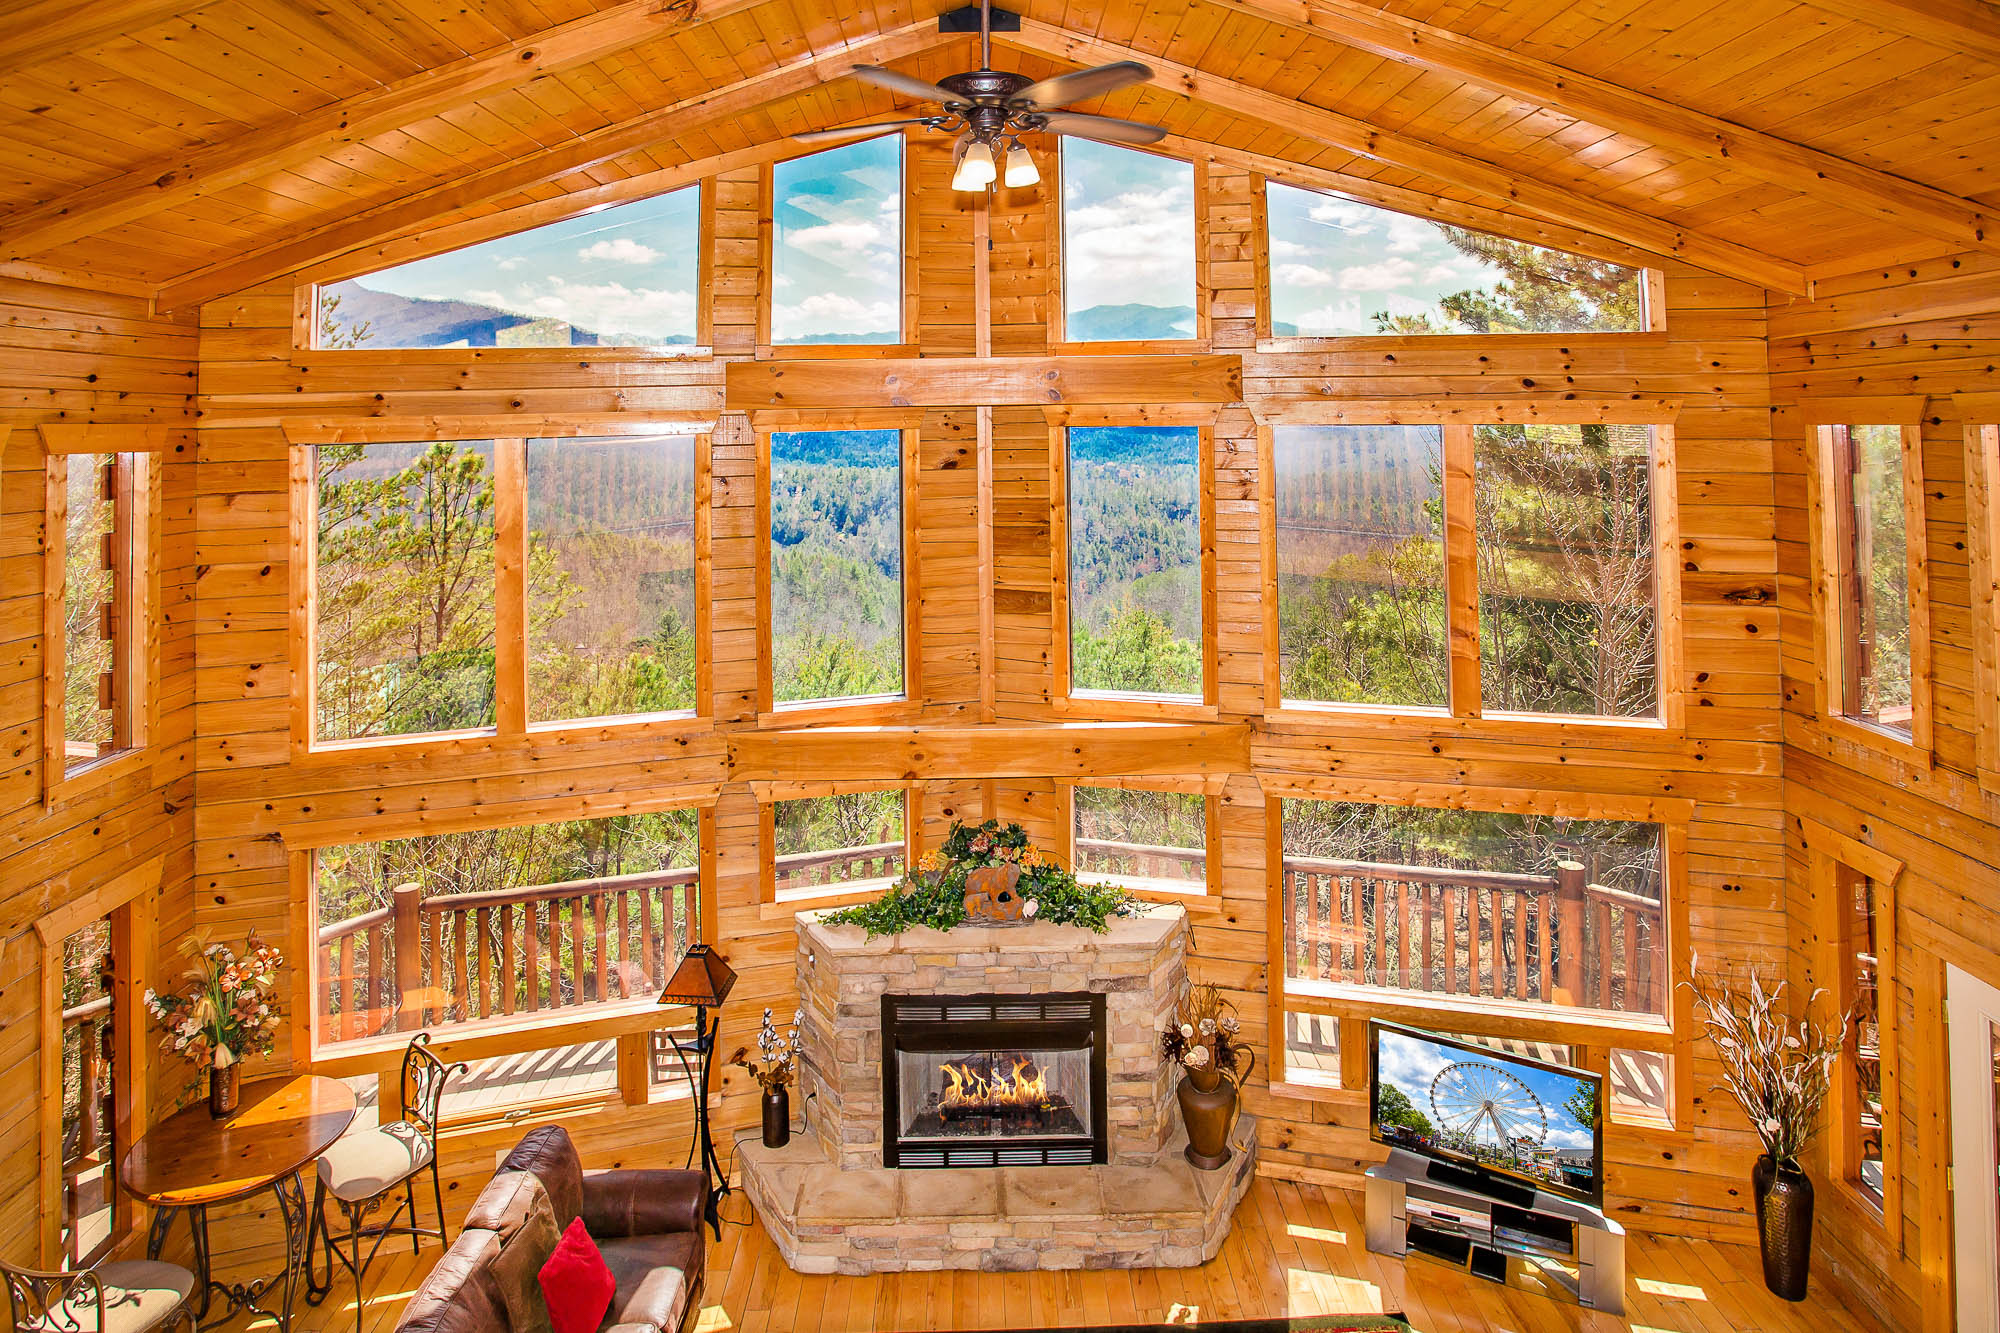 Linger Lodge Place To Stay On Vacation 4 Bedroom 5 Full Bathroom Gatlinburg Tennessee 134020 Find Rentals